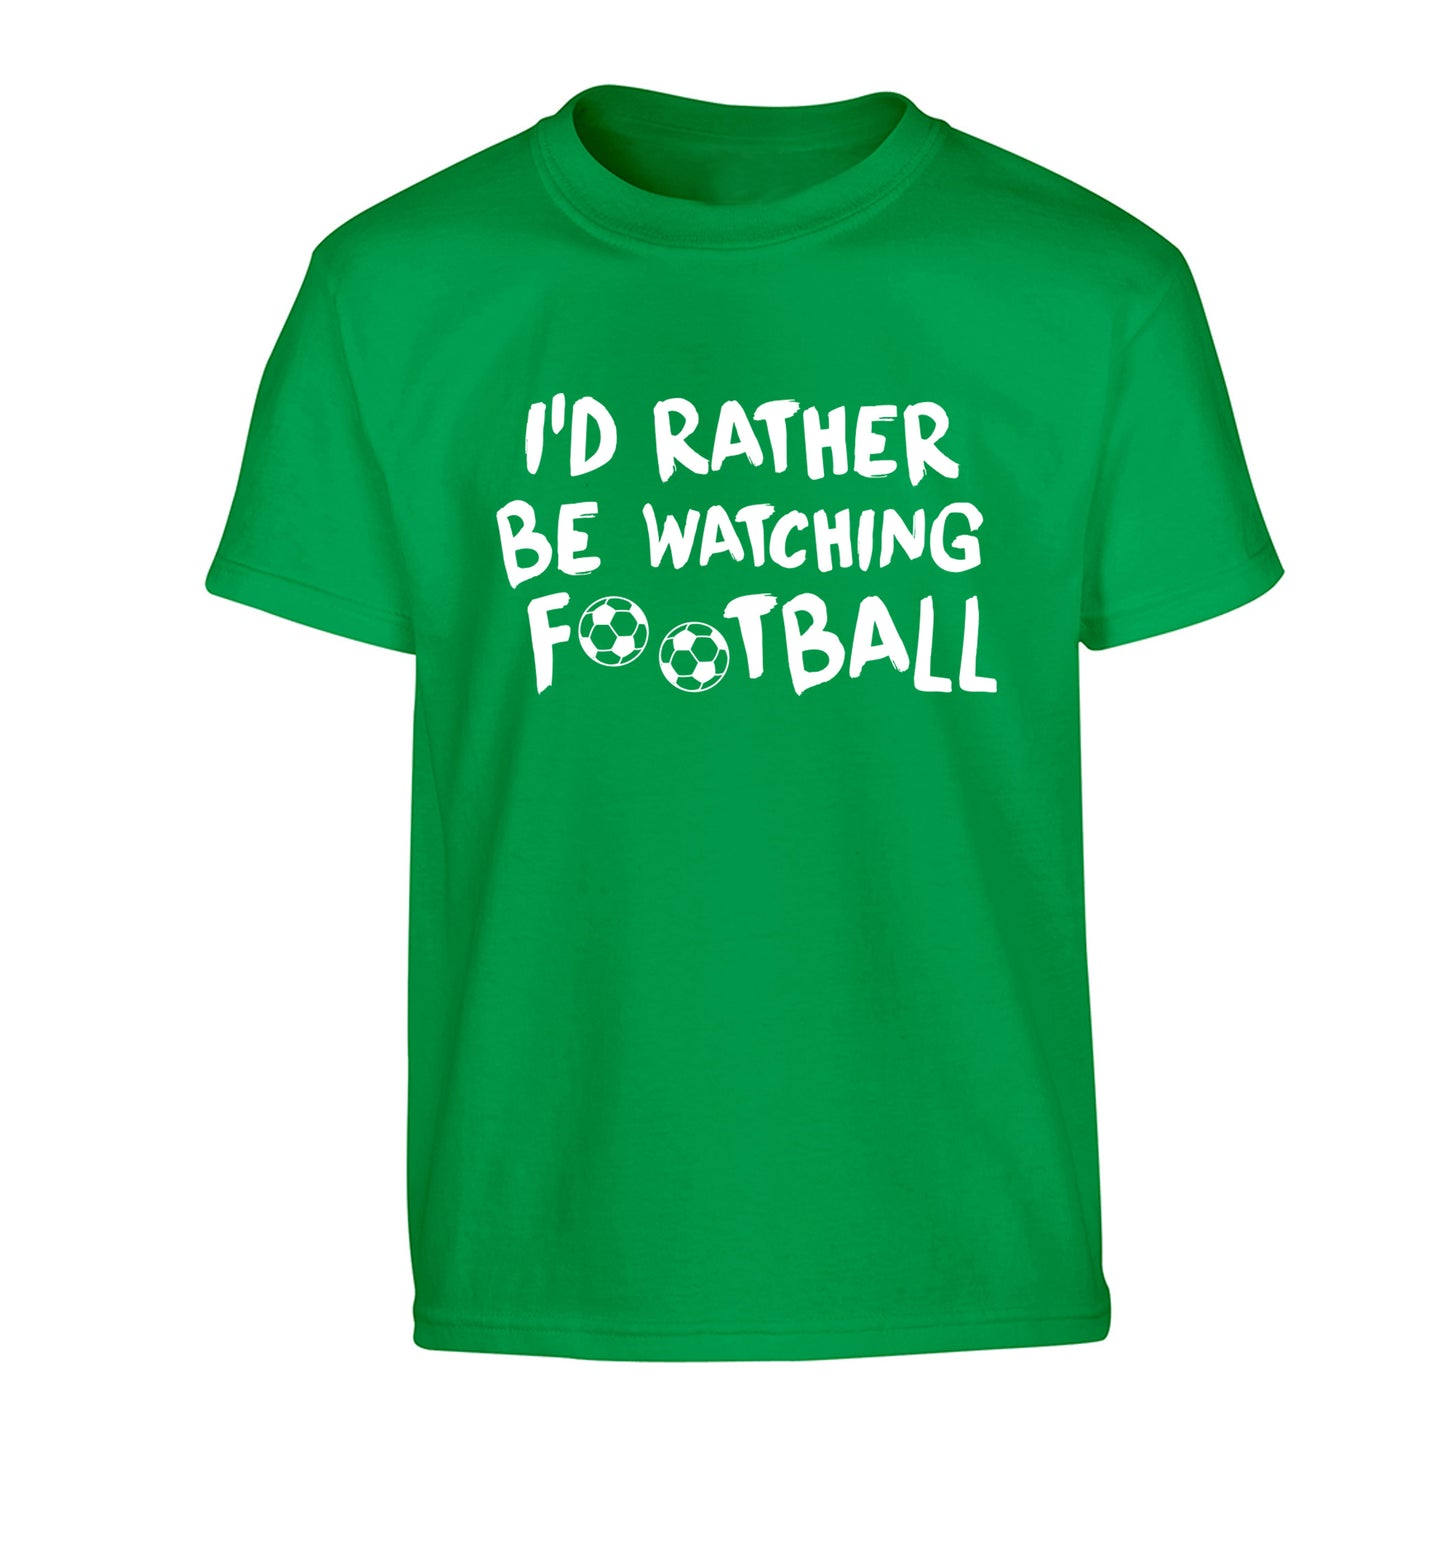 I'd rather be watching football Children's green Tshirt 12-14 Years